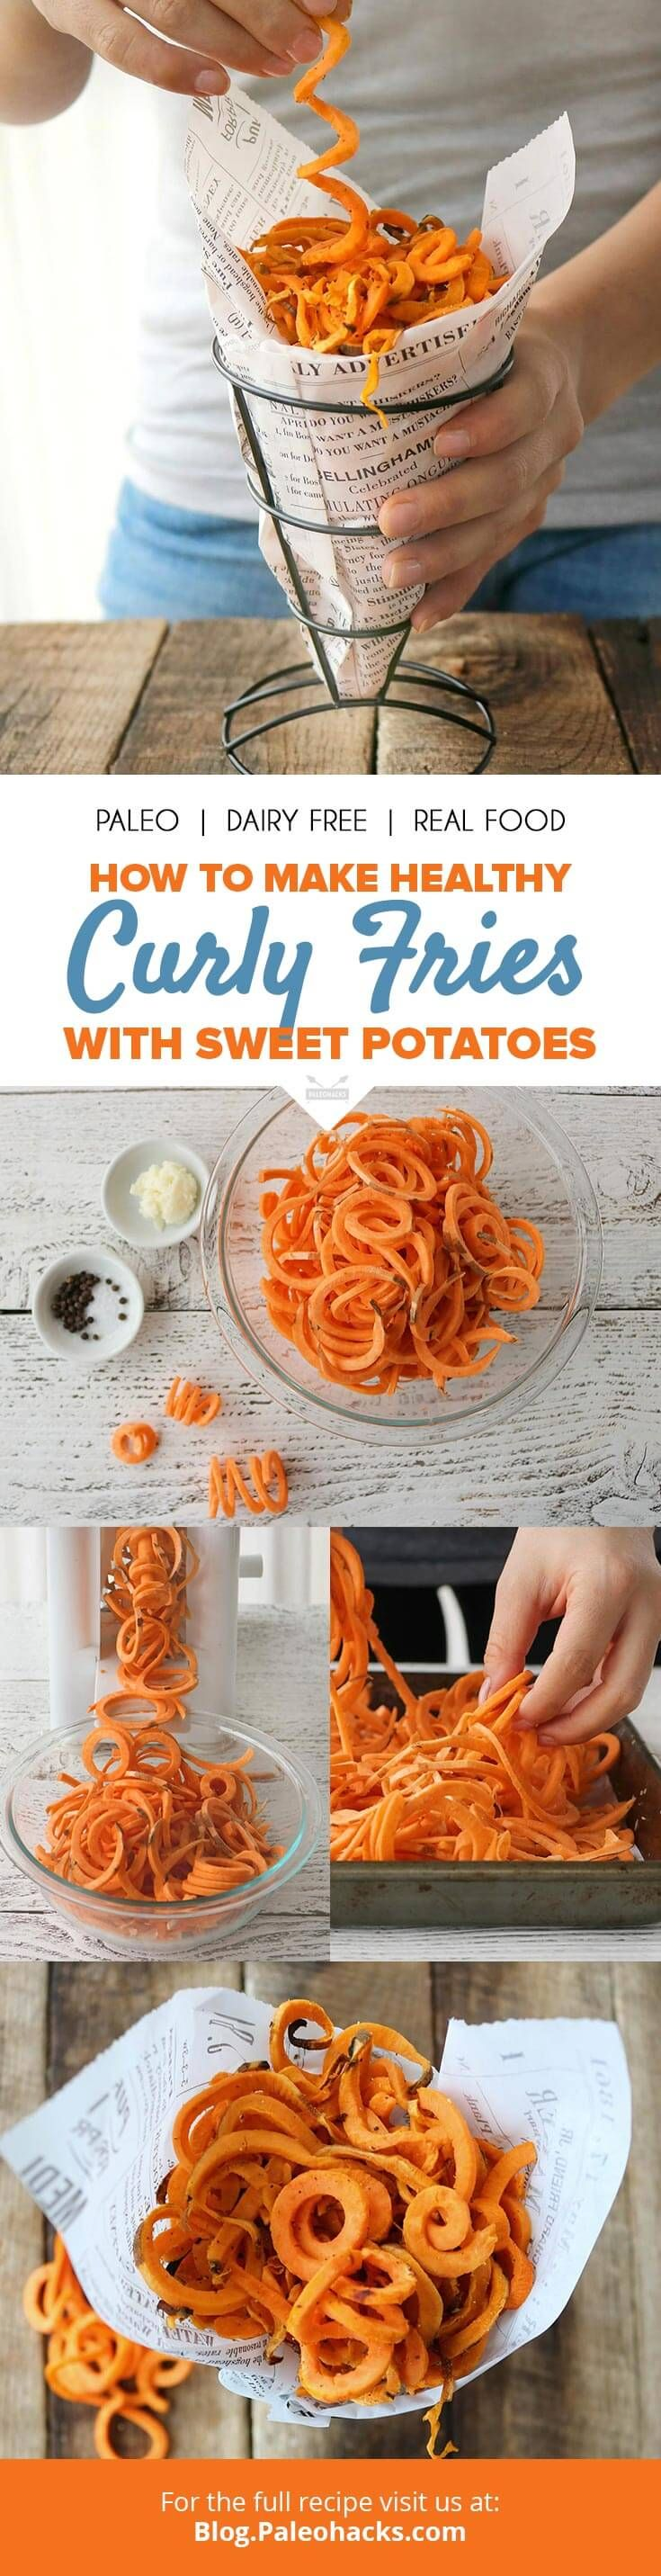 Sweet potato curly fries tossed in beef tallow make a healthy snack for both kids and grown-ups! Get the recipe here: http://paleo.co/curlyfriesrcp